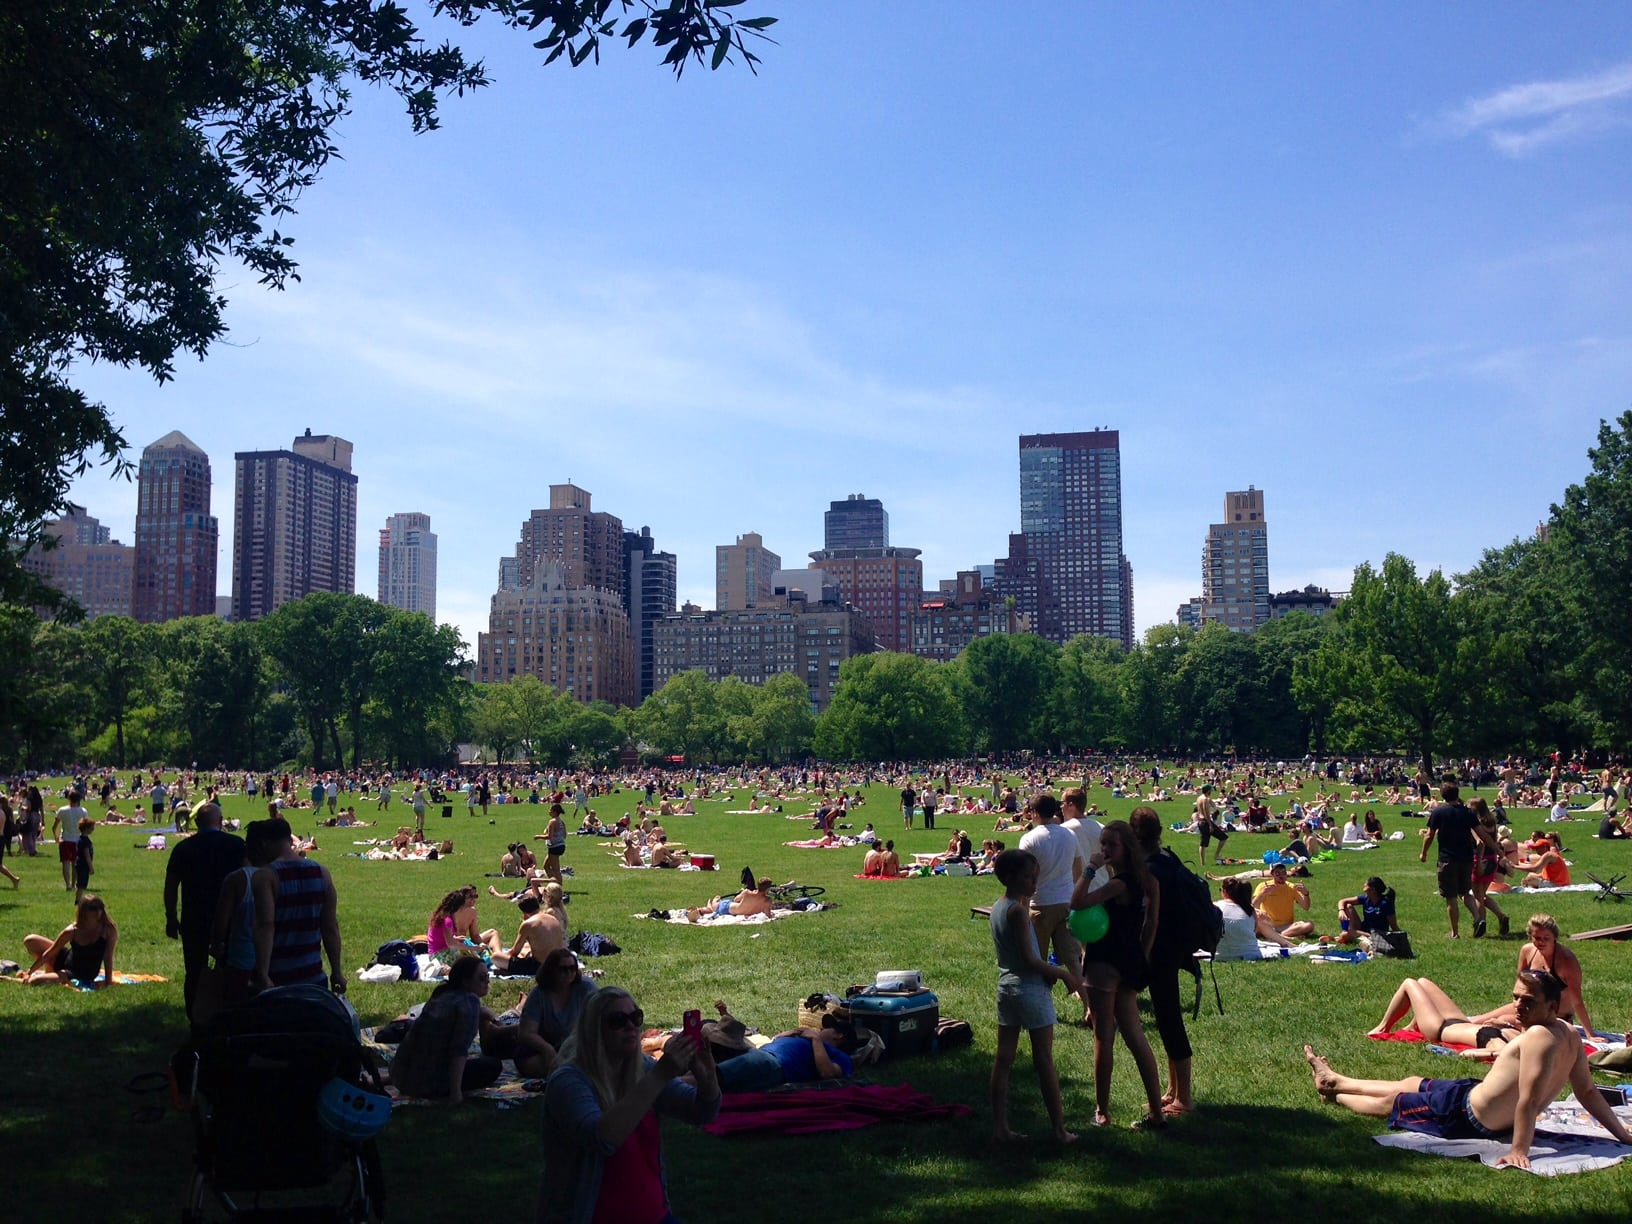 5 Best Areas to Visit in Central Park